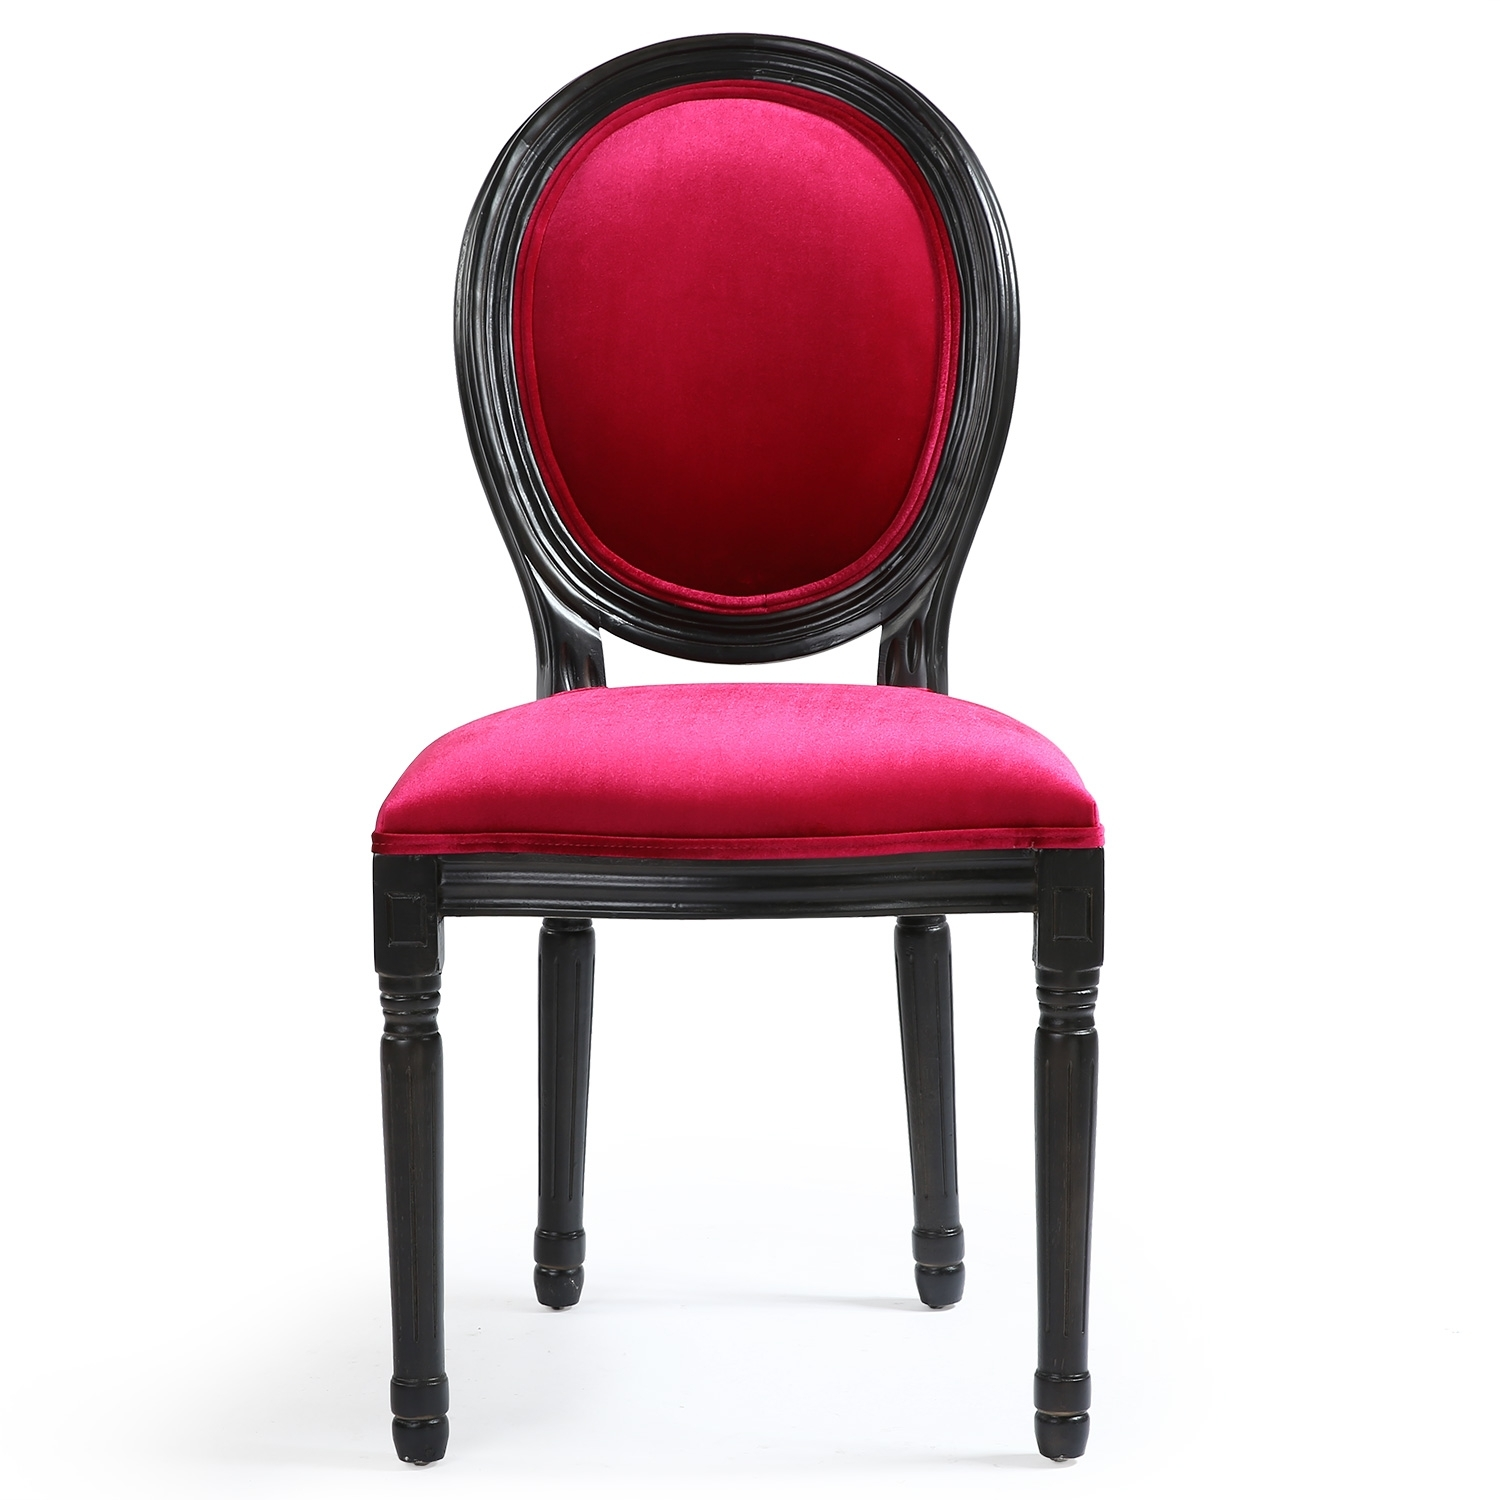 chaise m daillon bois patin noir et velours fuchsia louis xvi lot de 2. Black Bedroom Furniture Sets. Home Design Ideas